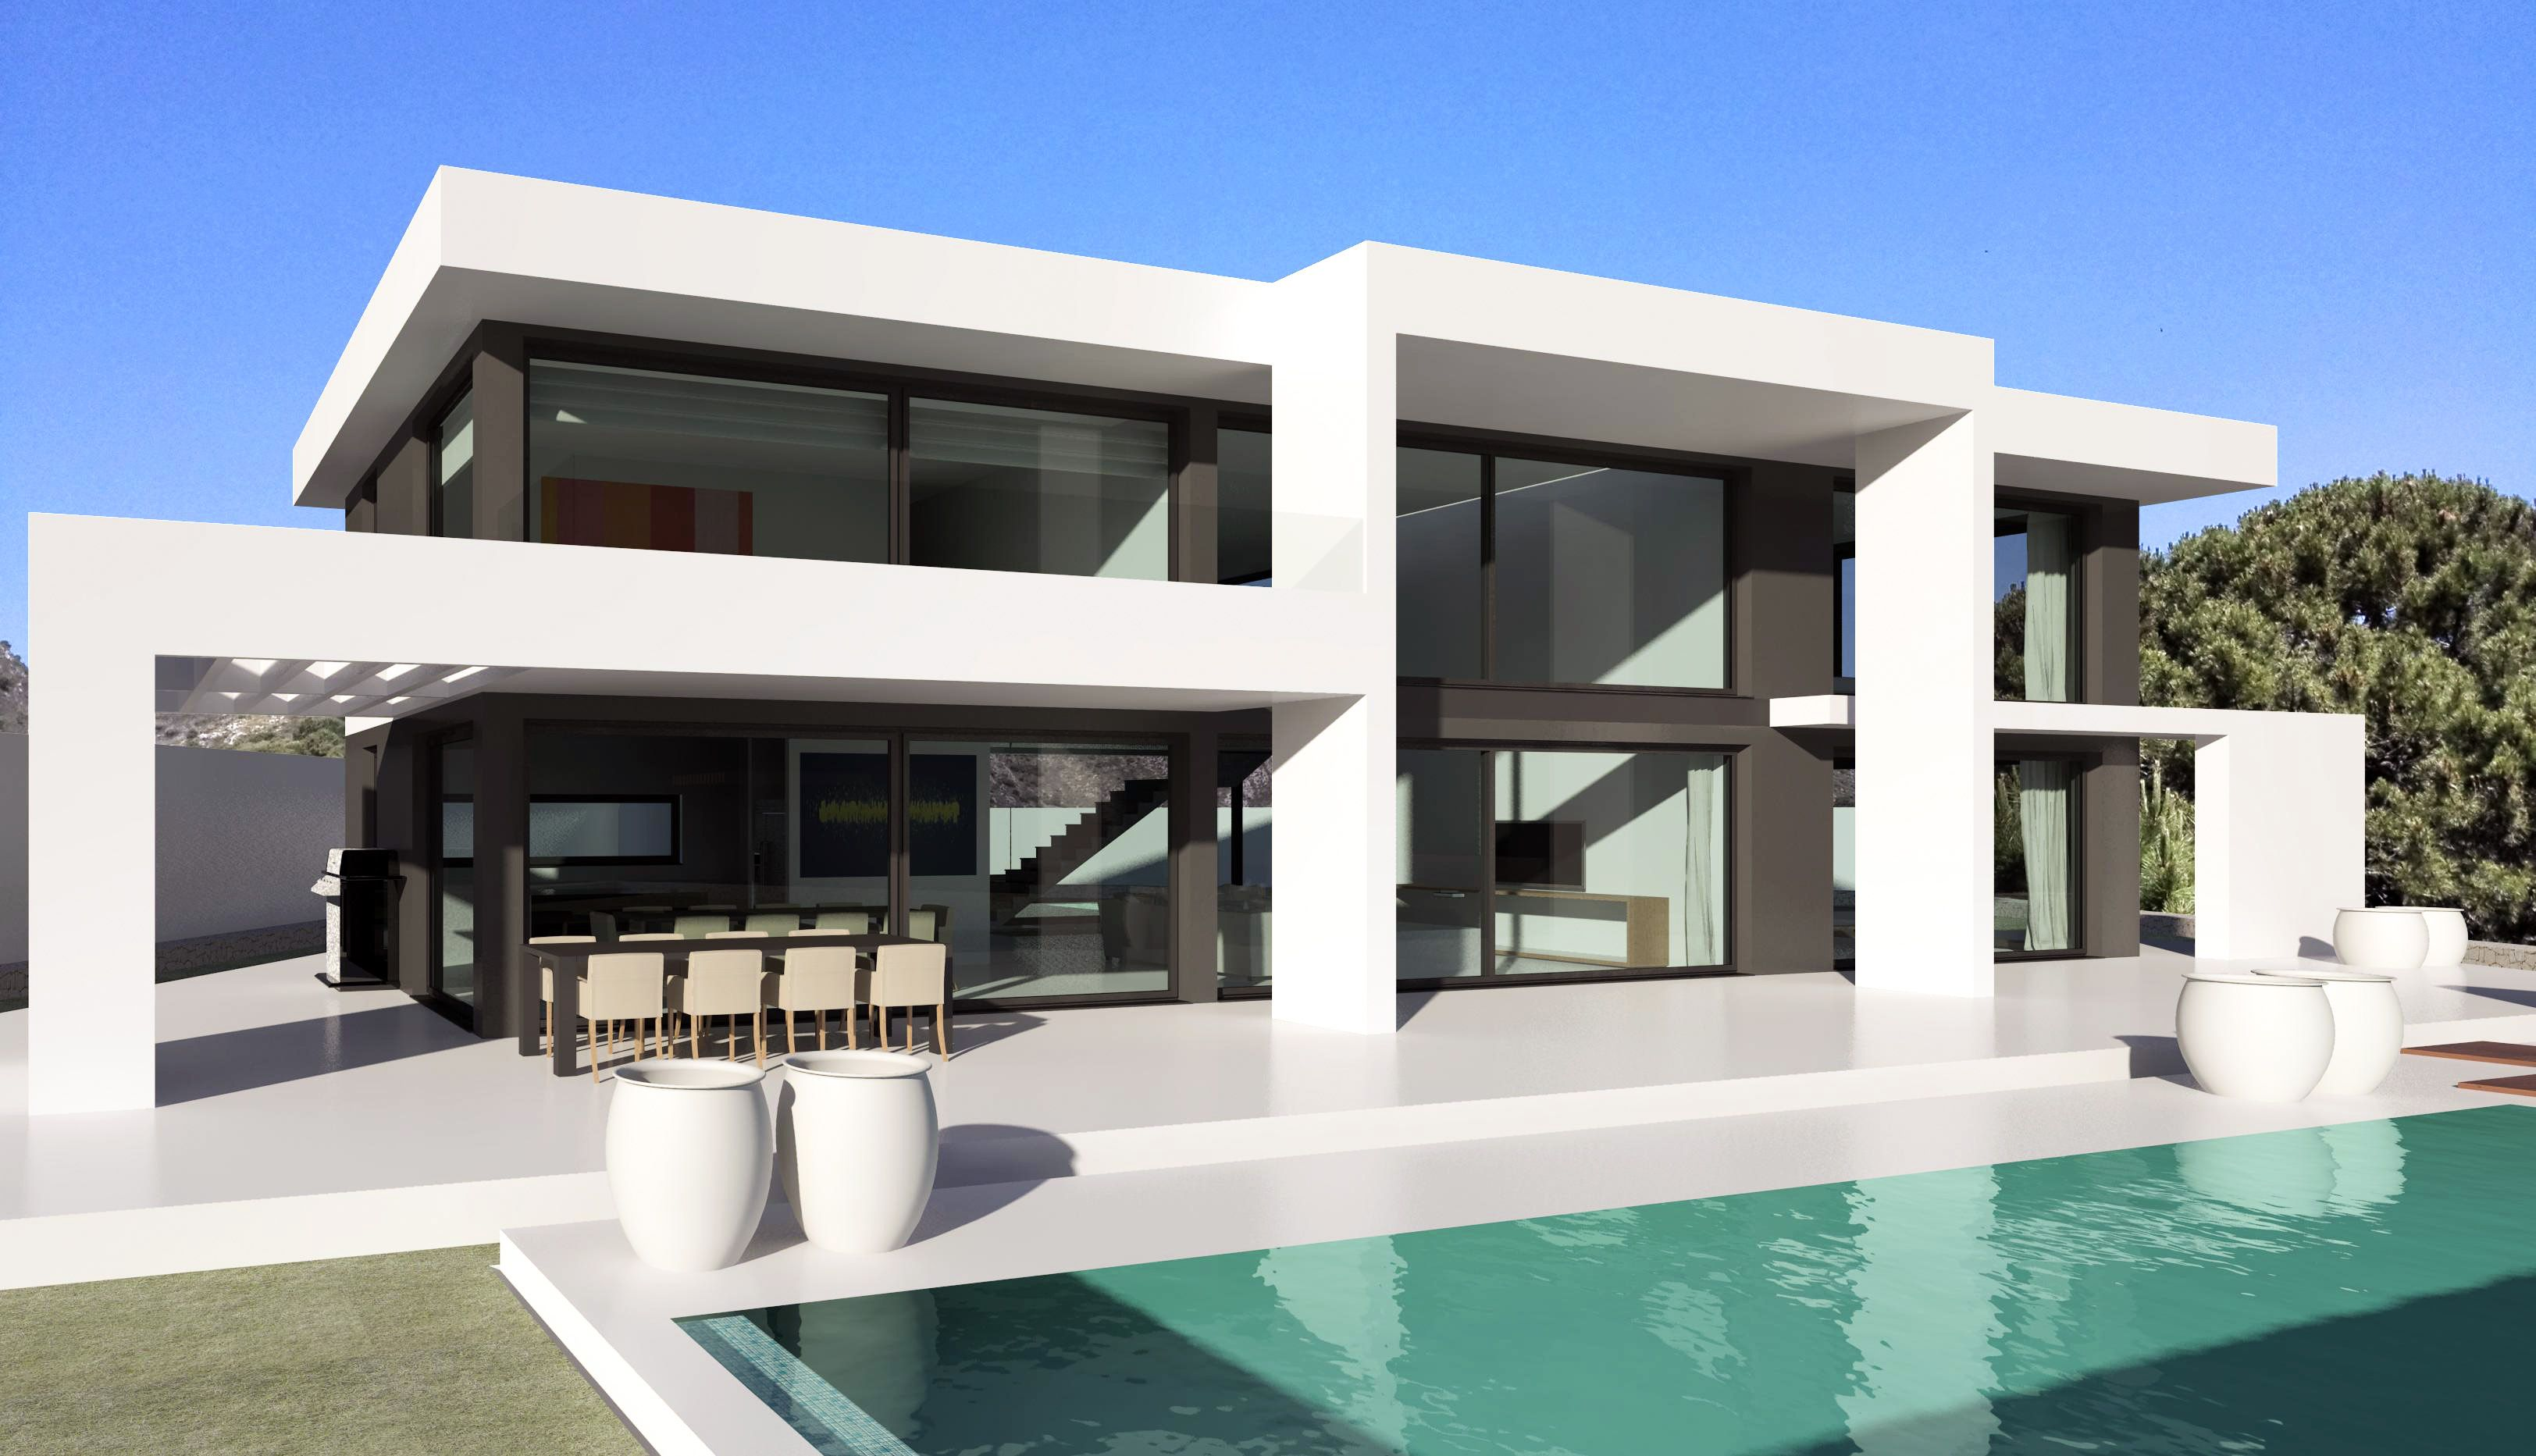 Modern turnkey villas in spain france portugal for Plan des villas modernes